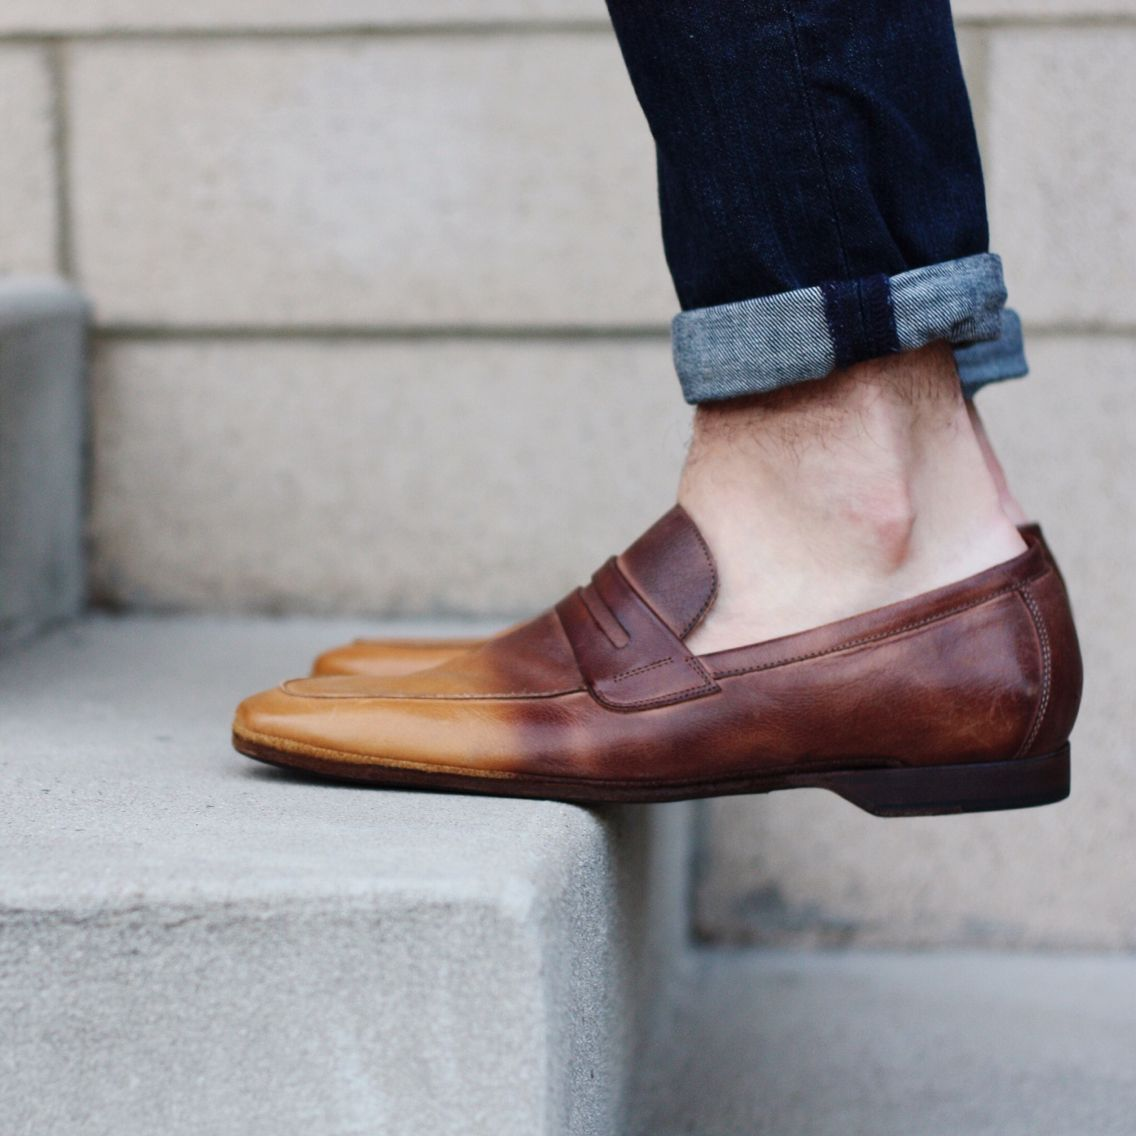 Image result for shoe without socks